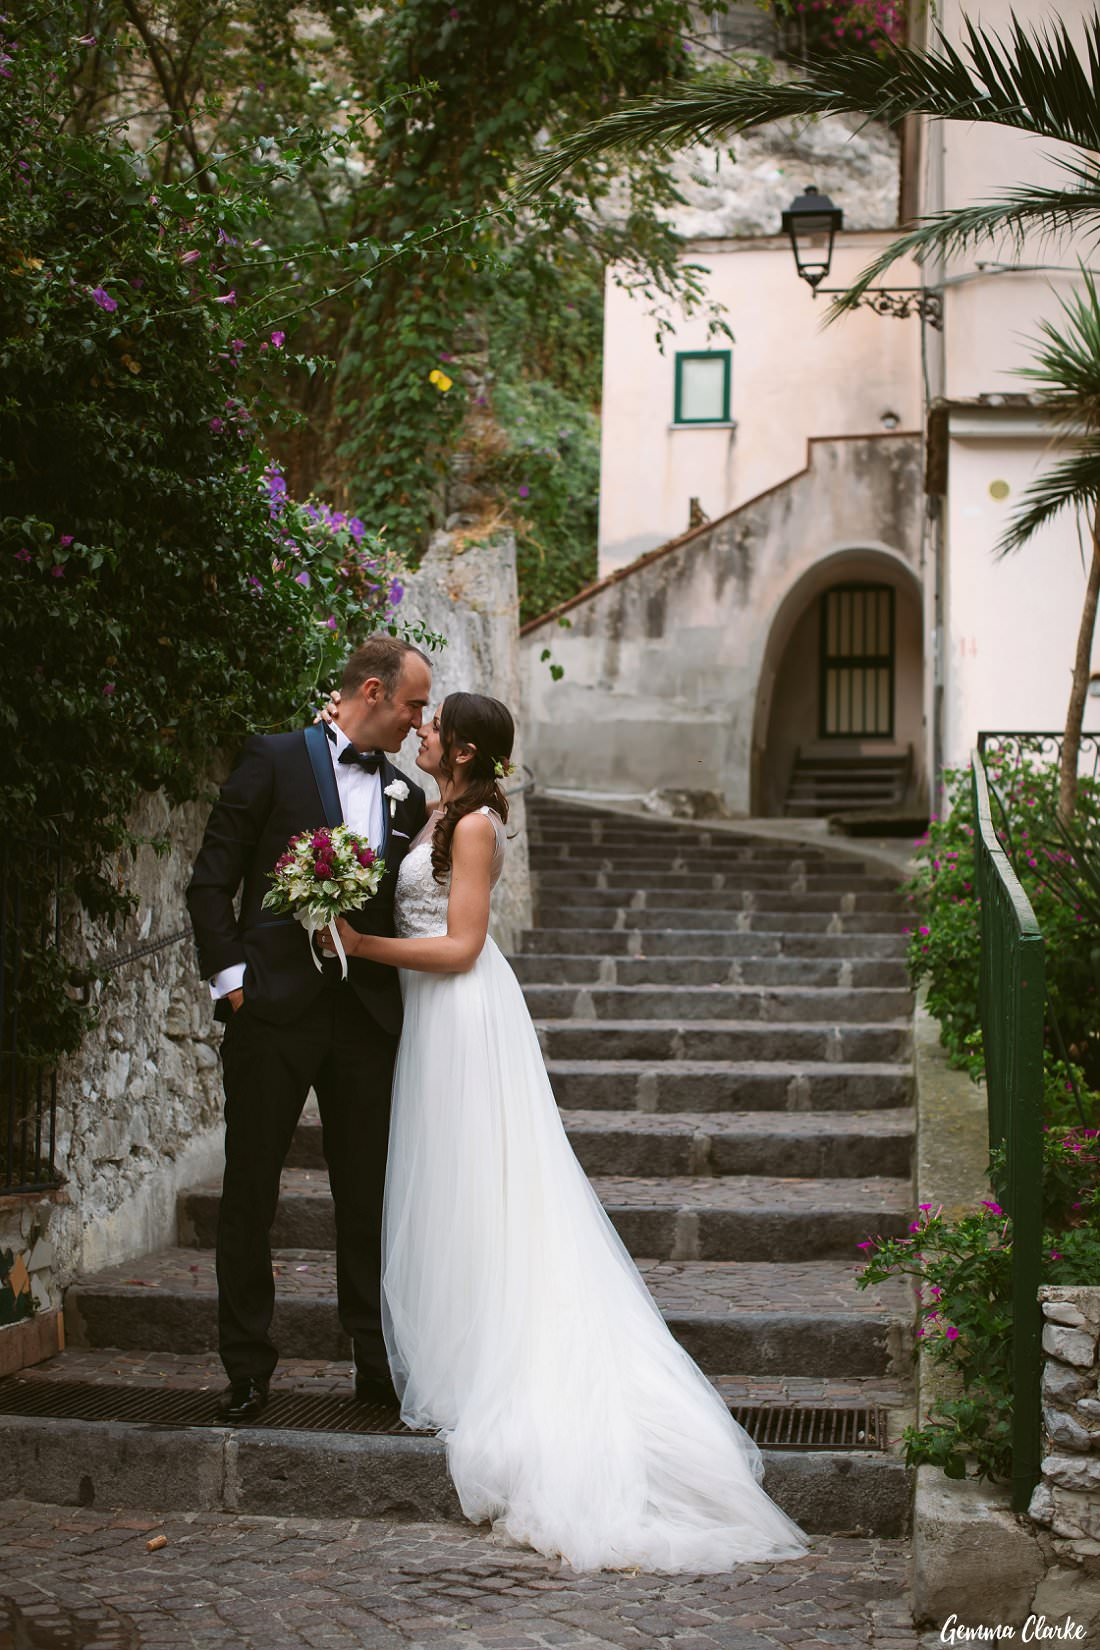 A romantic pose by the stone stairs in the village of Erchie on the Amalfi Coast at this Italian Destination Wedding